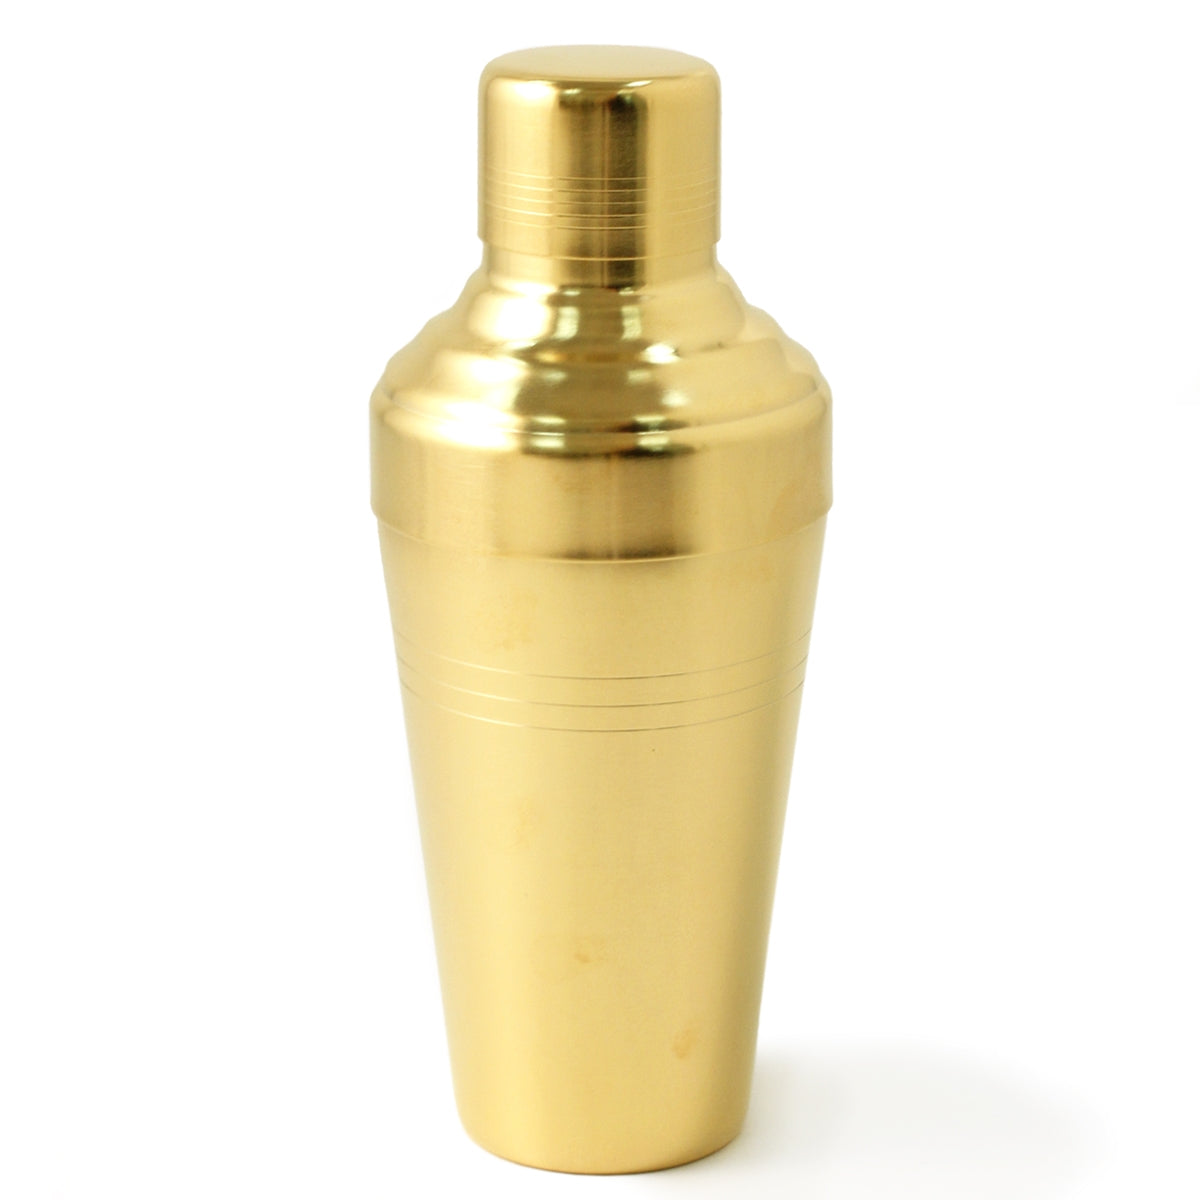 Yukiwa Matte Gold-Plated Baron 3-Piece Cocktail Shaker 410ml (13.8 oz)